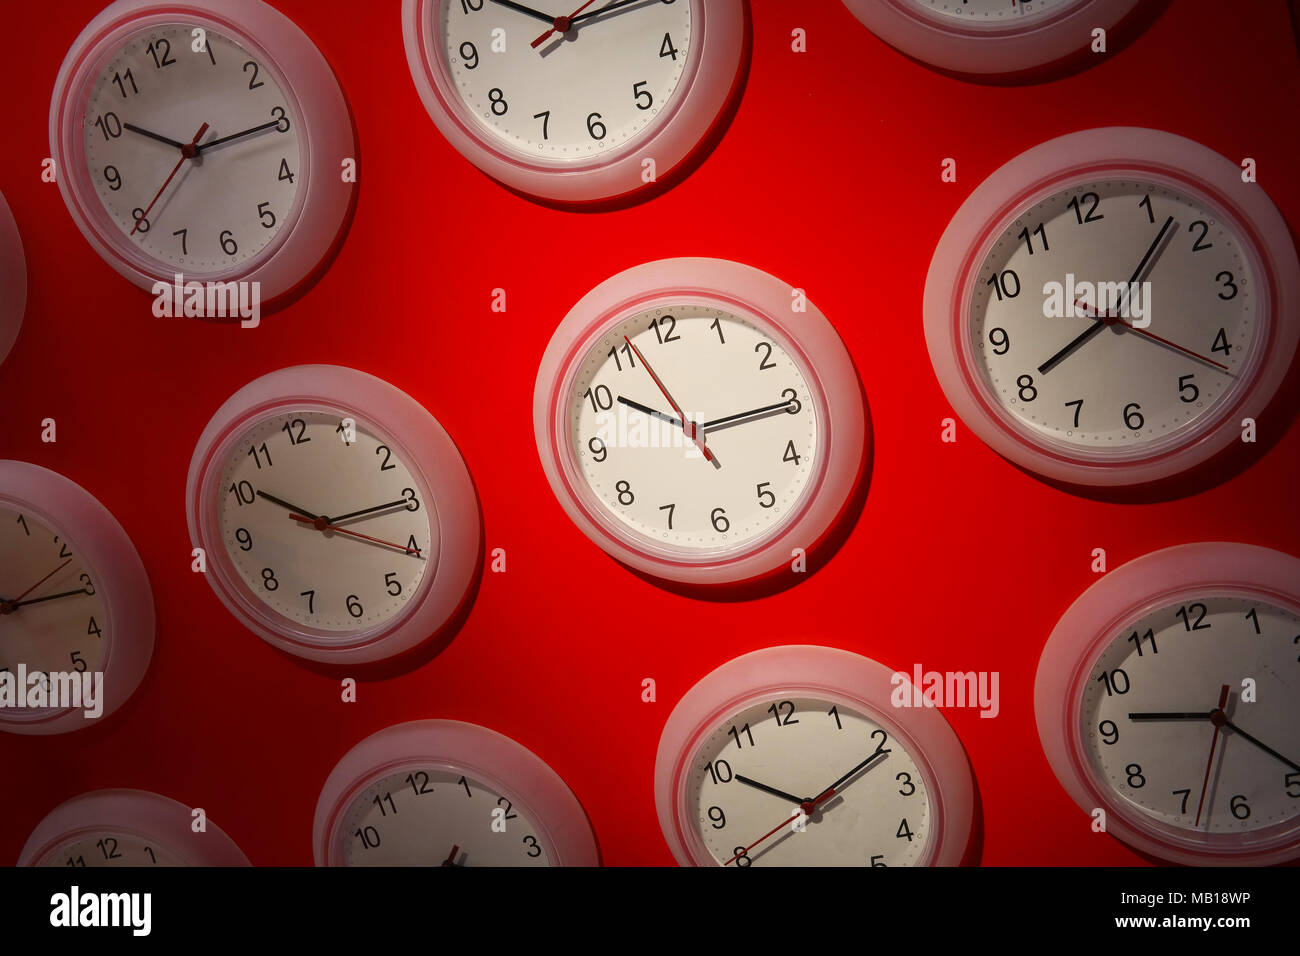 Clocks on a red background - Stock Image